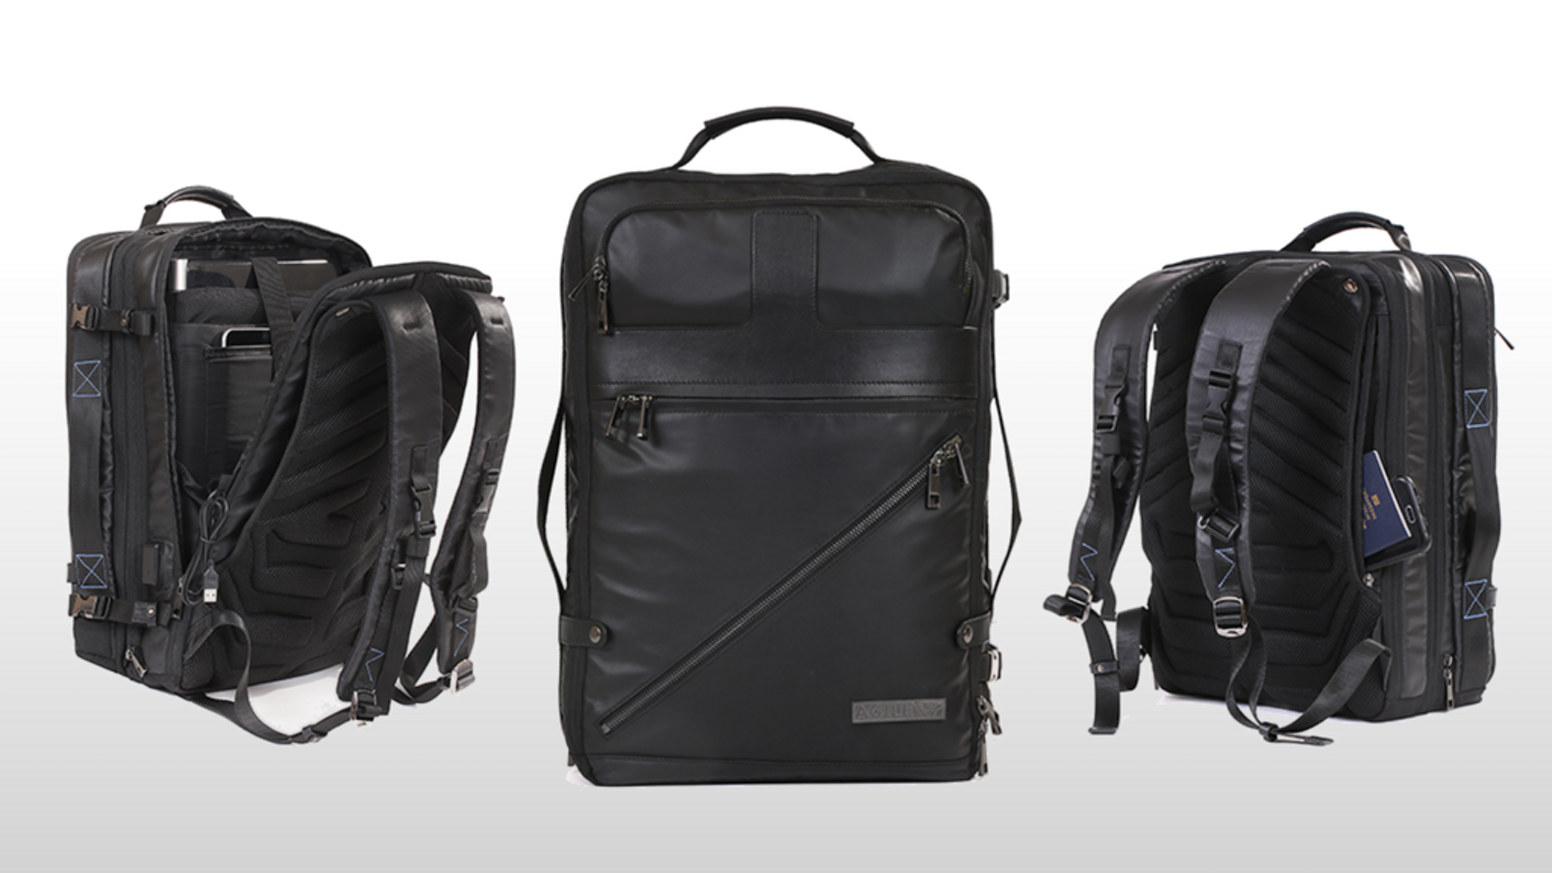 The Ultimate Premium Backpack For Everyday Carry Or Weekend Trips Crafted With Only